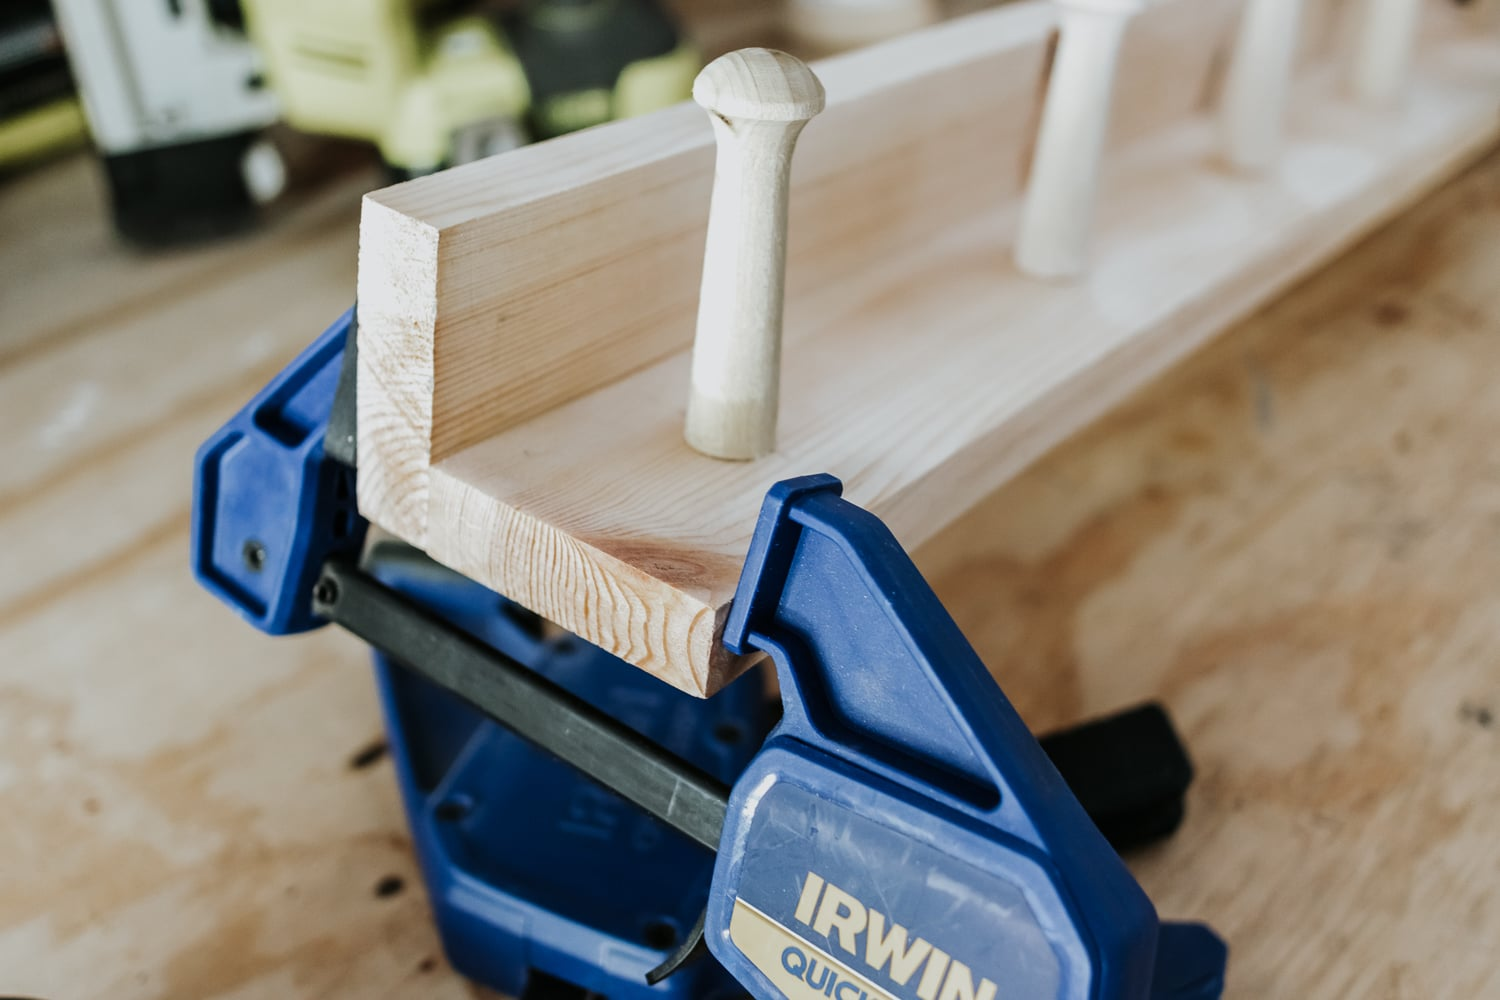 clamping a shelf to a peg rail - how to tutorial in post